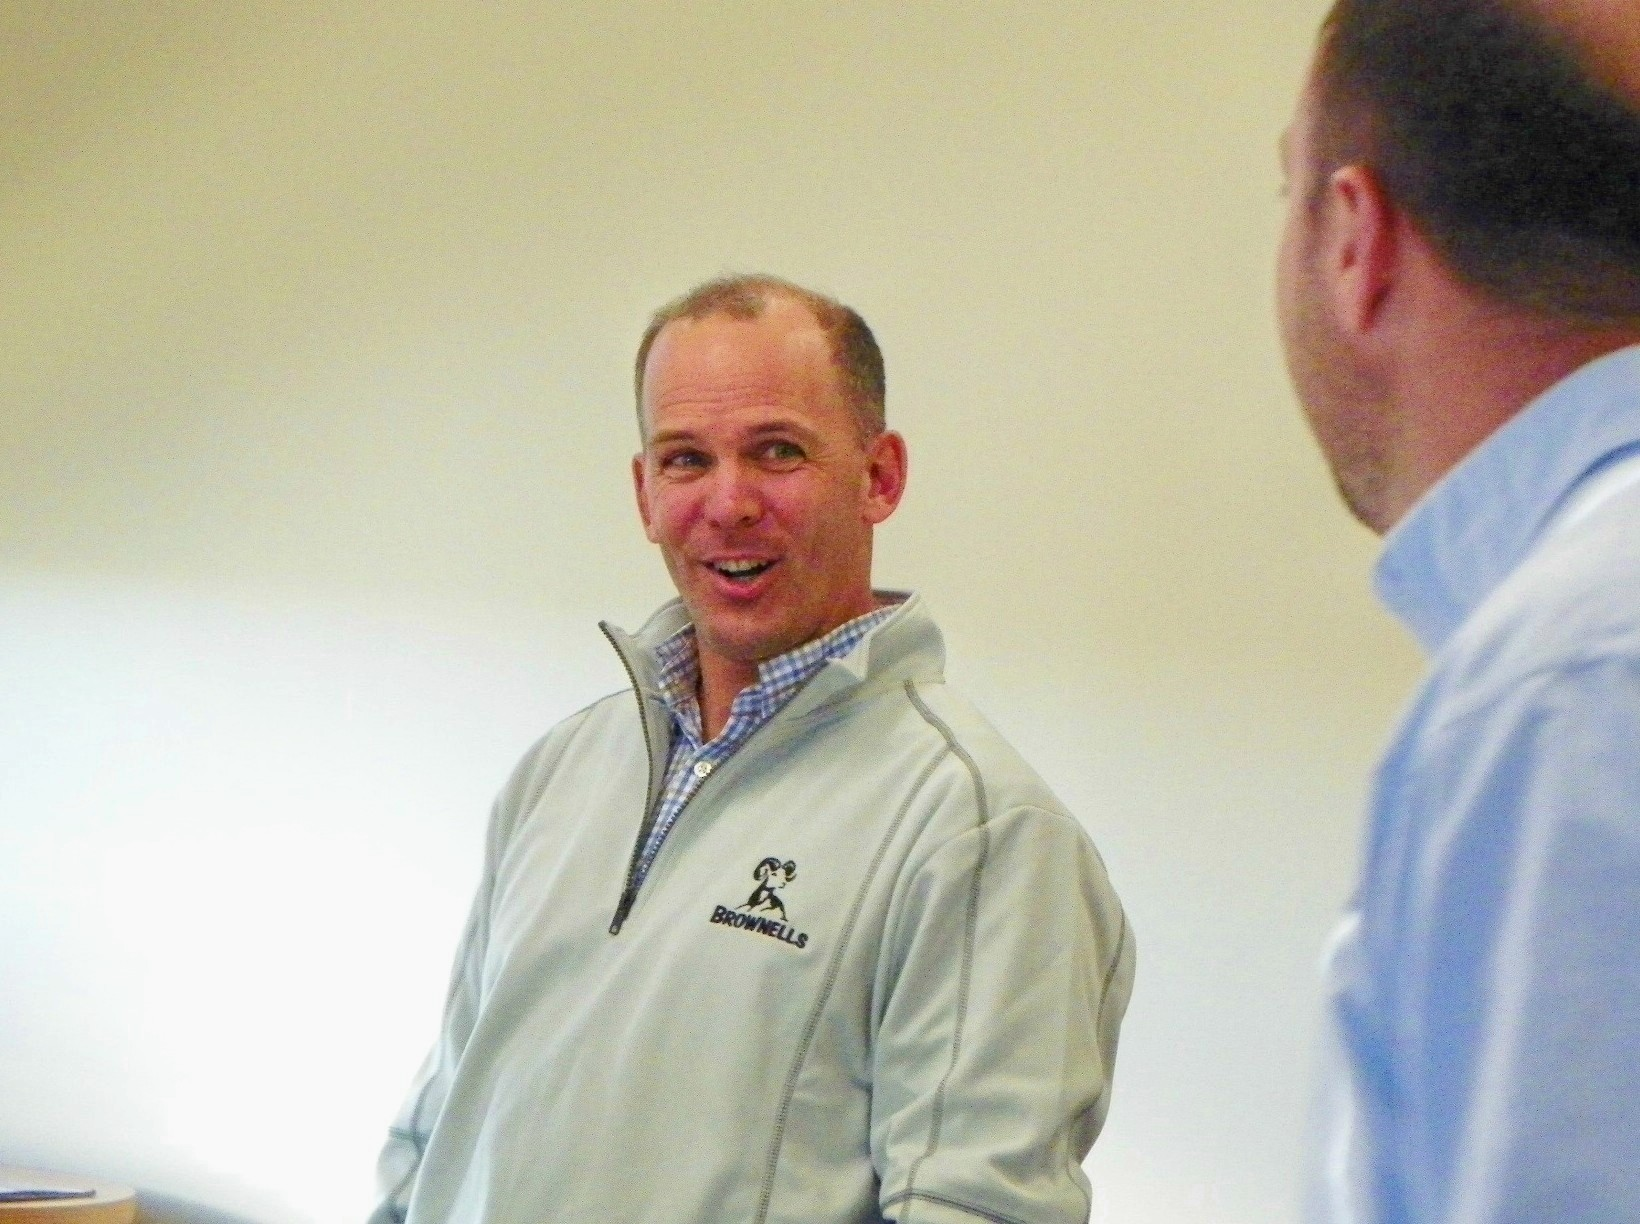 Company CEO Pete Brownell shares a laugh with a visitor.